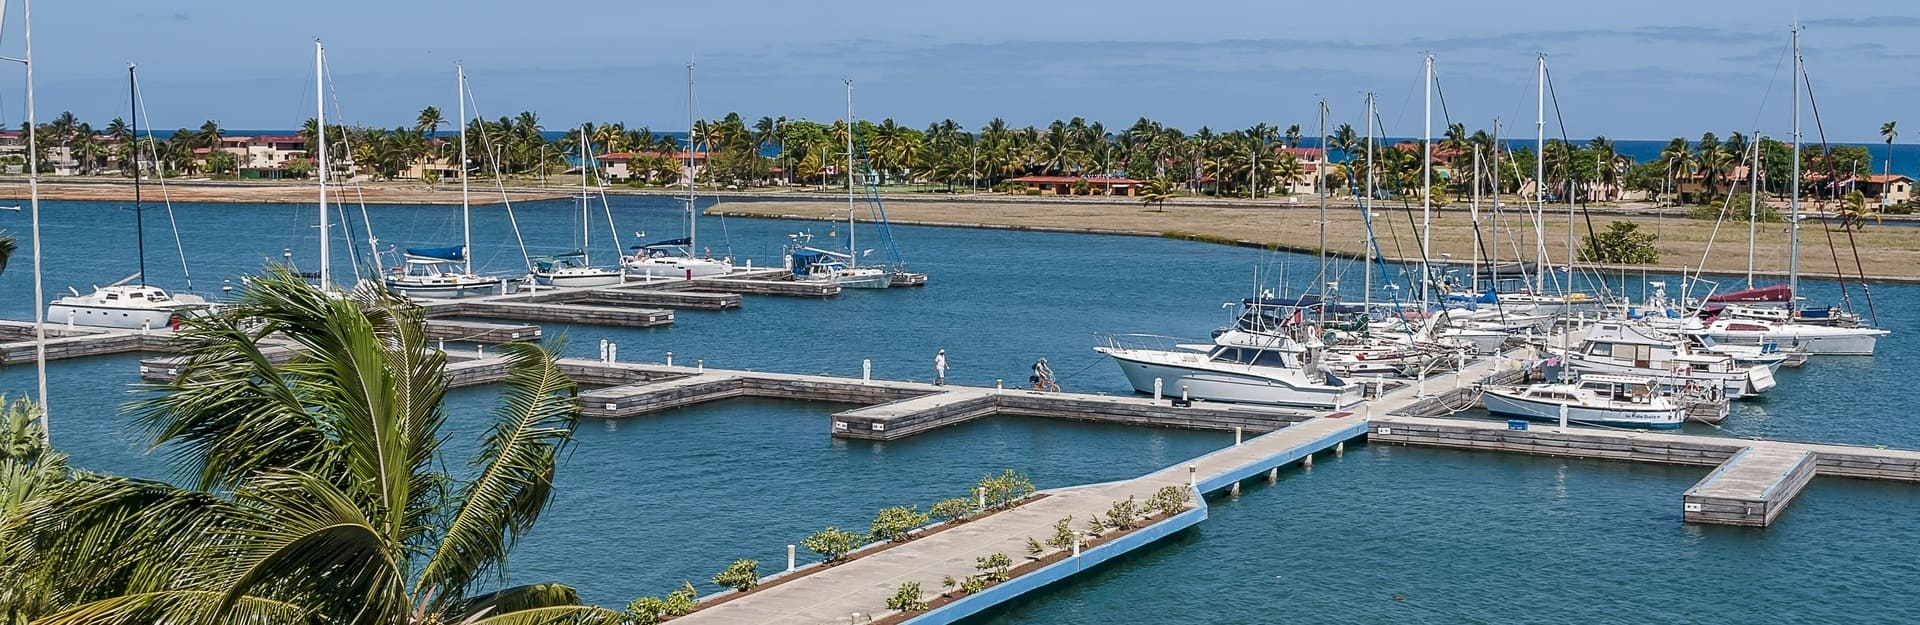 Dársena international marina, Marlin, Varadero, Cuba